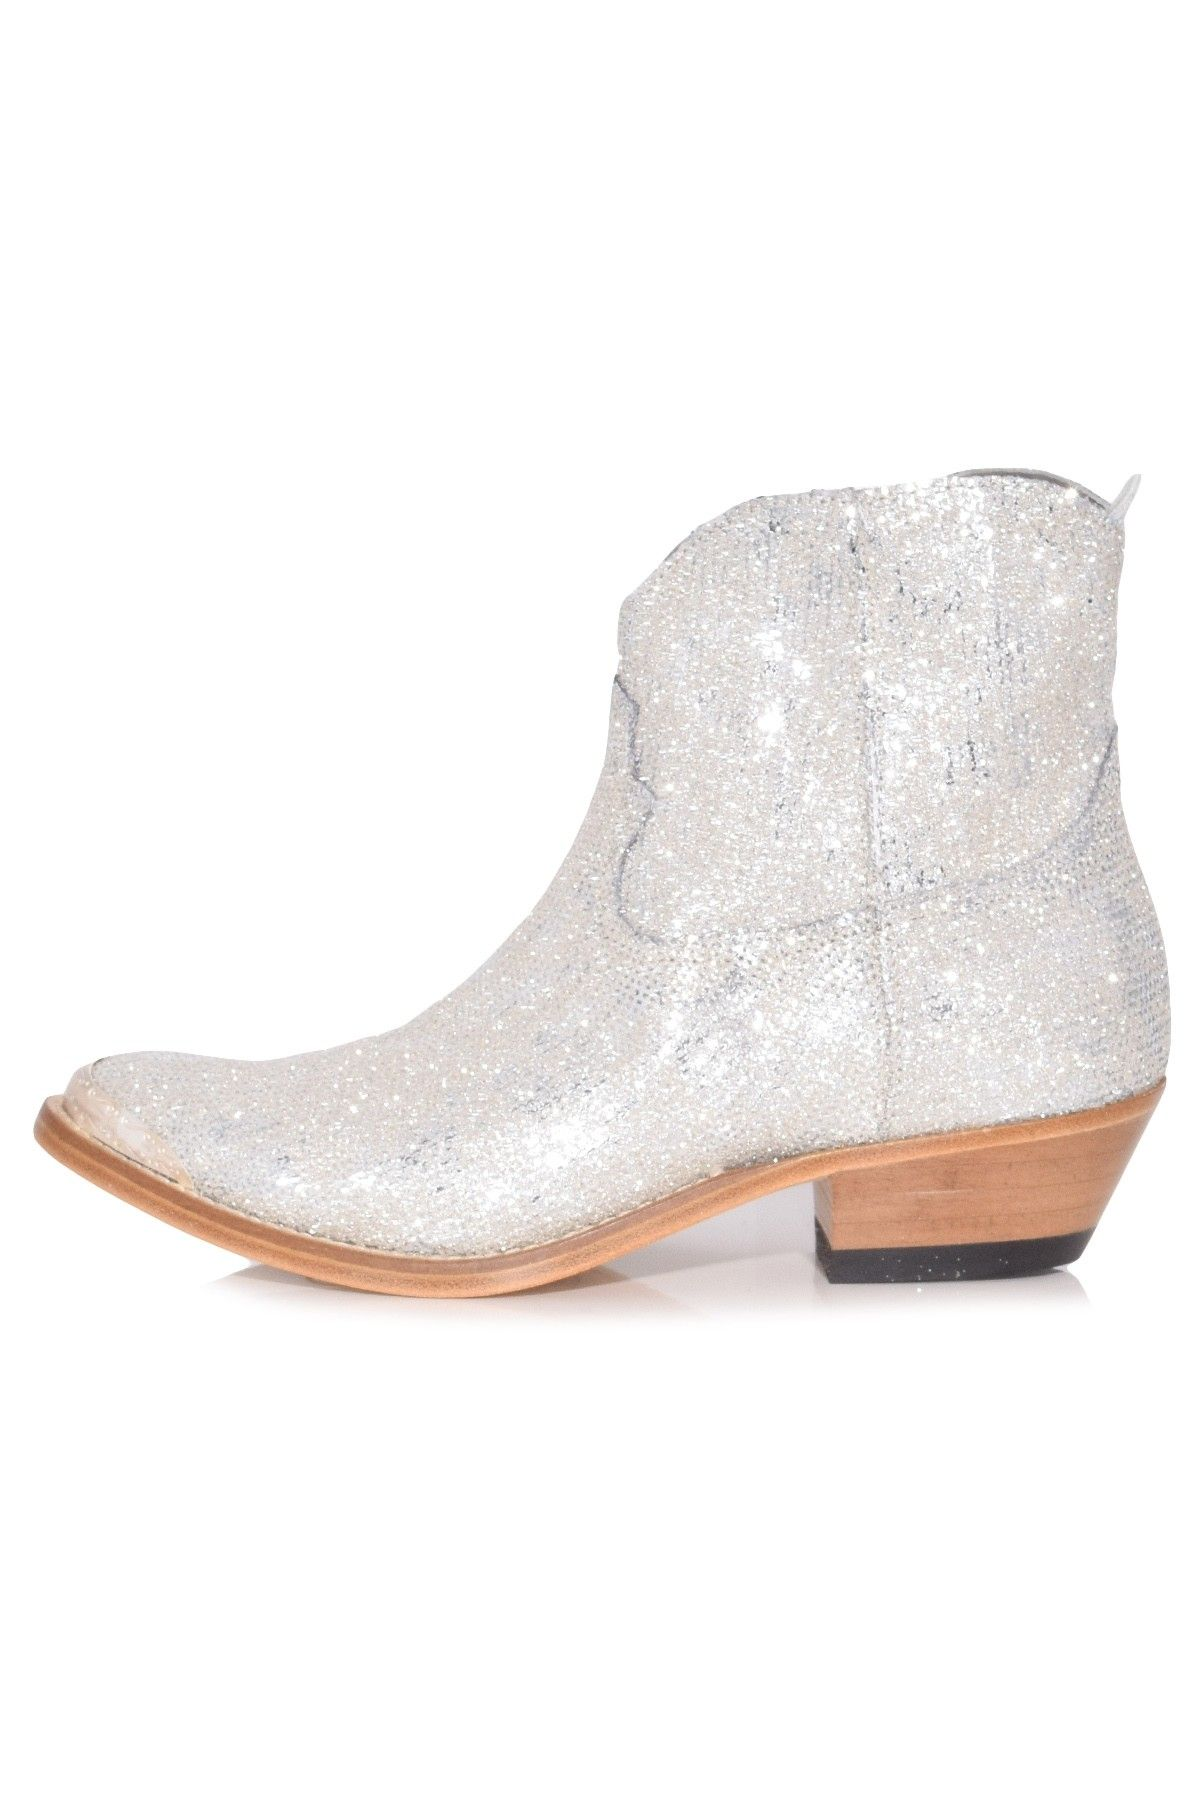 3e2992e6012 Young Boots in Silver Glitter Pailettes in 2019 | Hampden Shoes ...